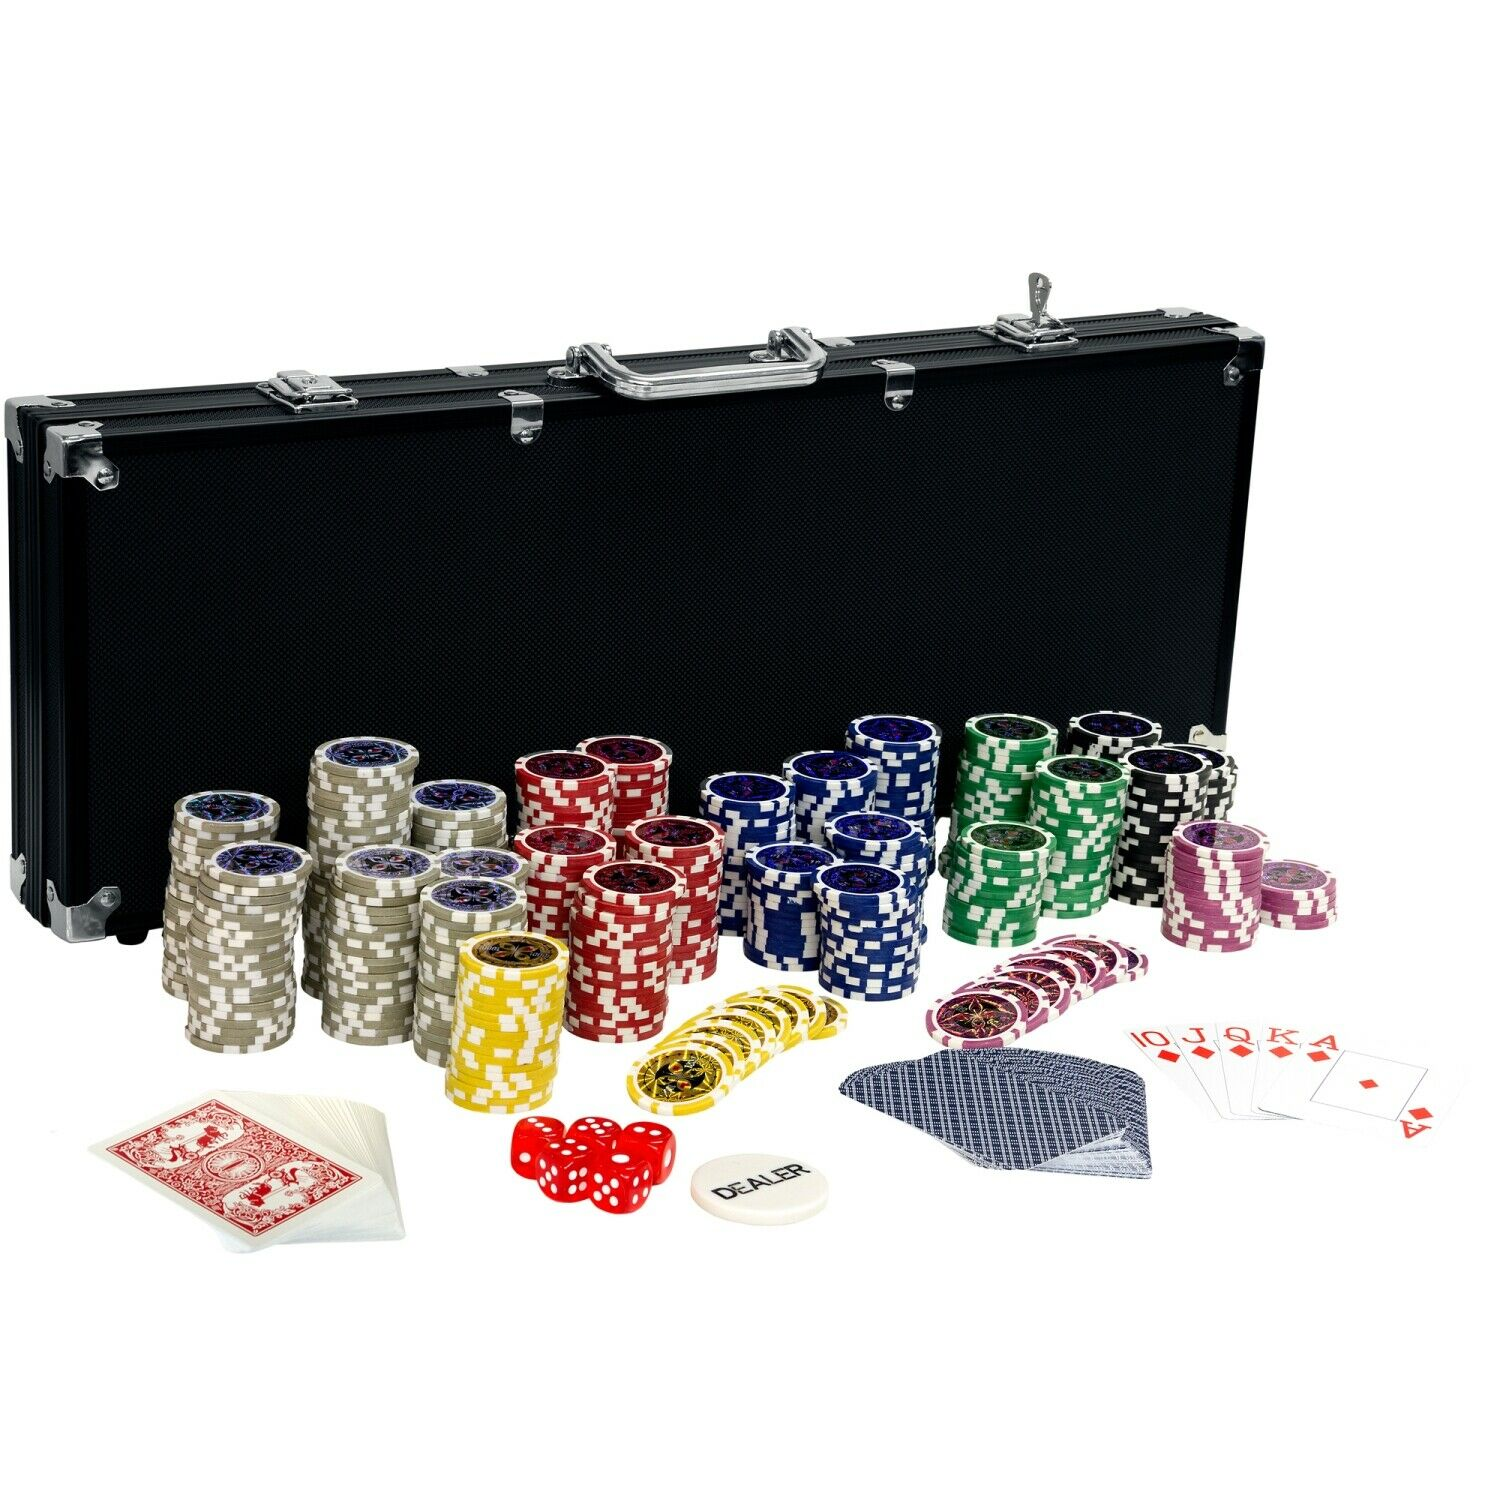 pokerkoffer pokerset poker black edition 500 set laser chips alu koffer jetons eur 37 90. Black Bedroom Furniture Sets. Home Design Ideas